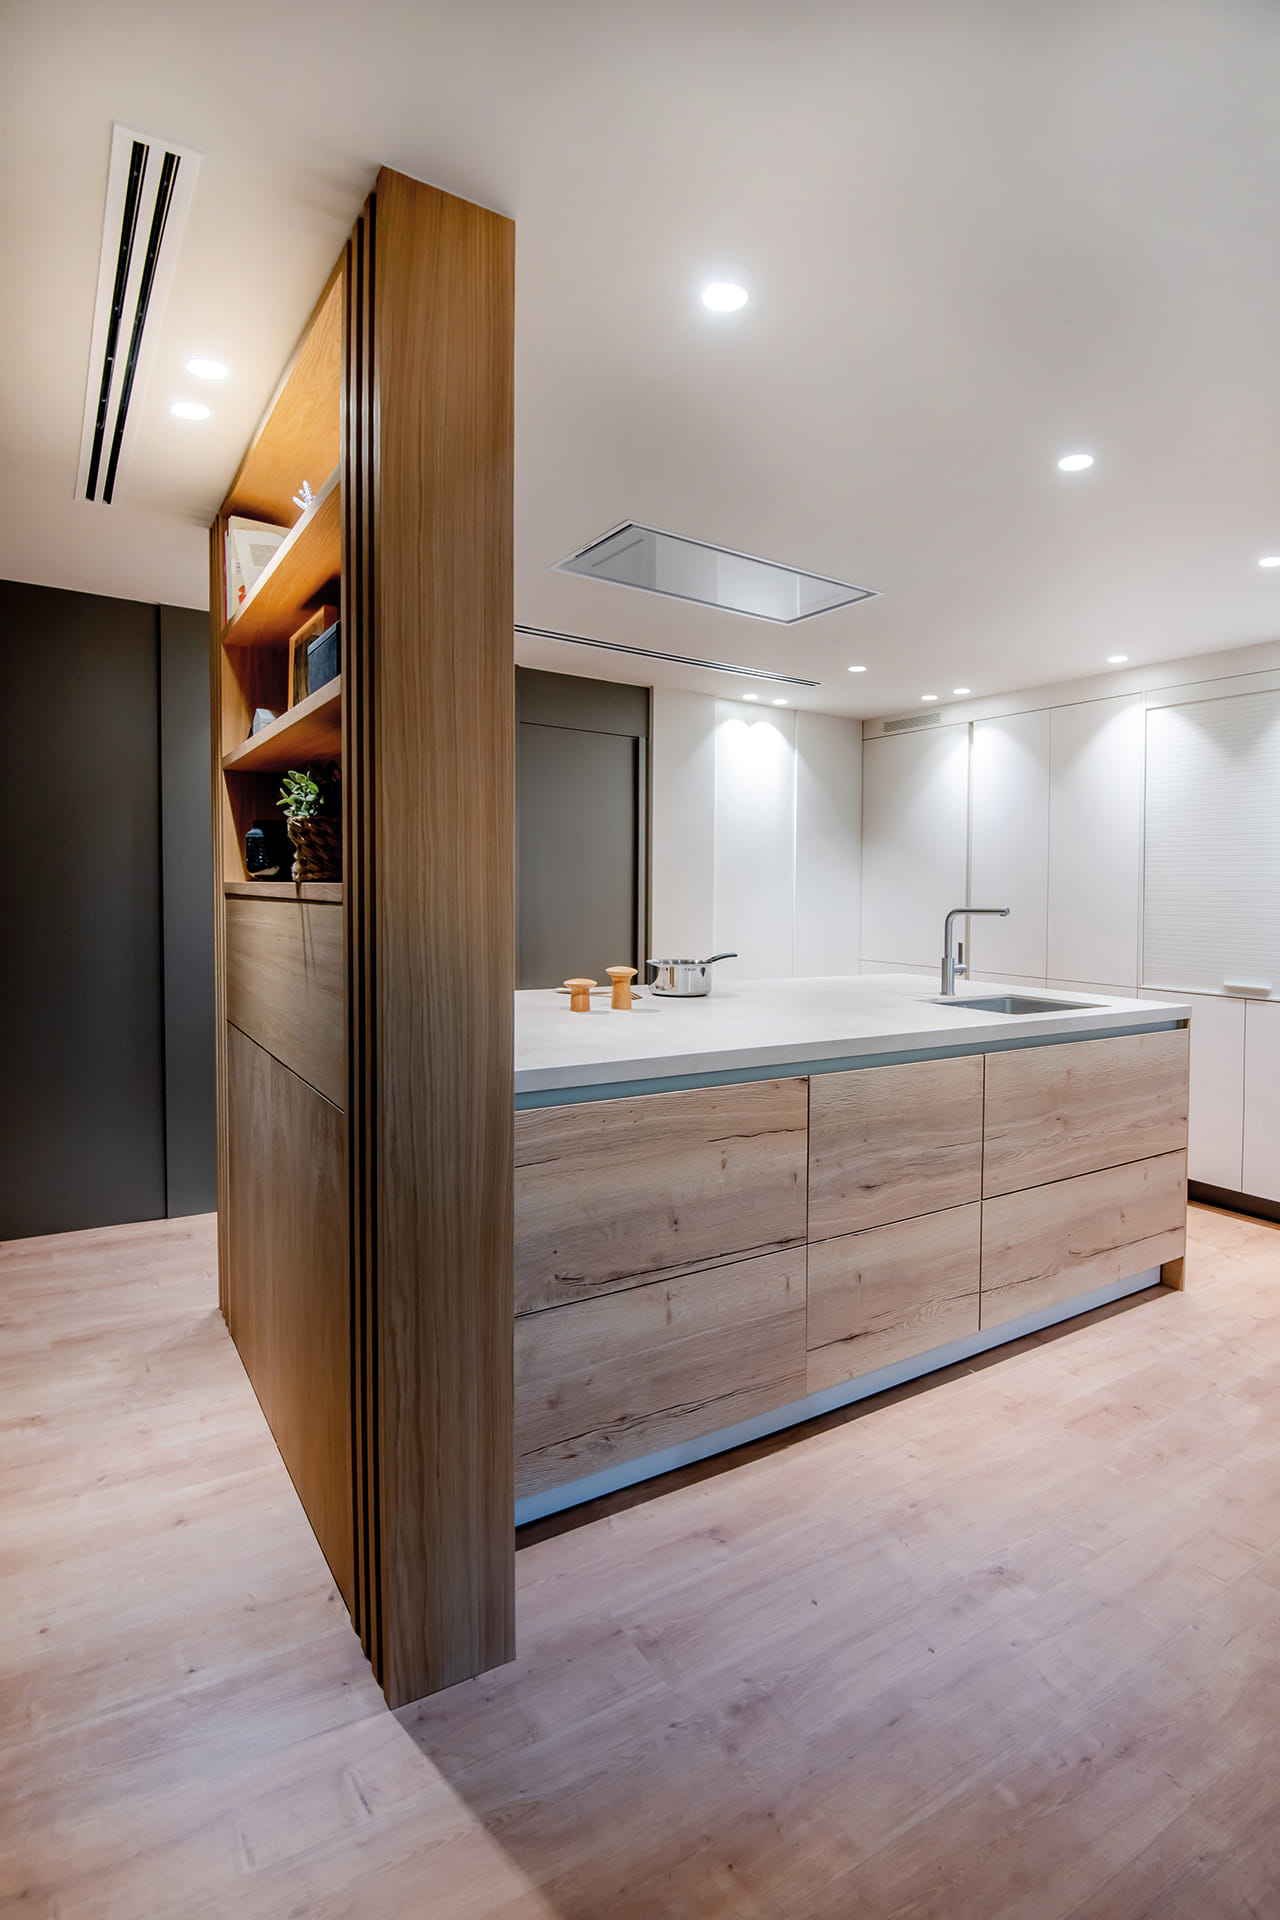 Open-plan kitchen with peninsula and wood